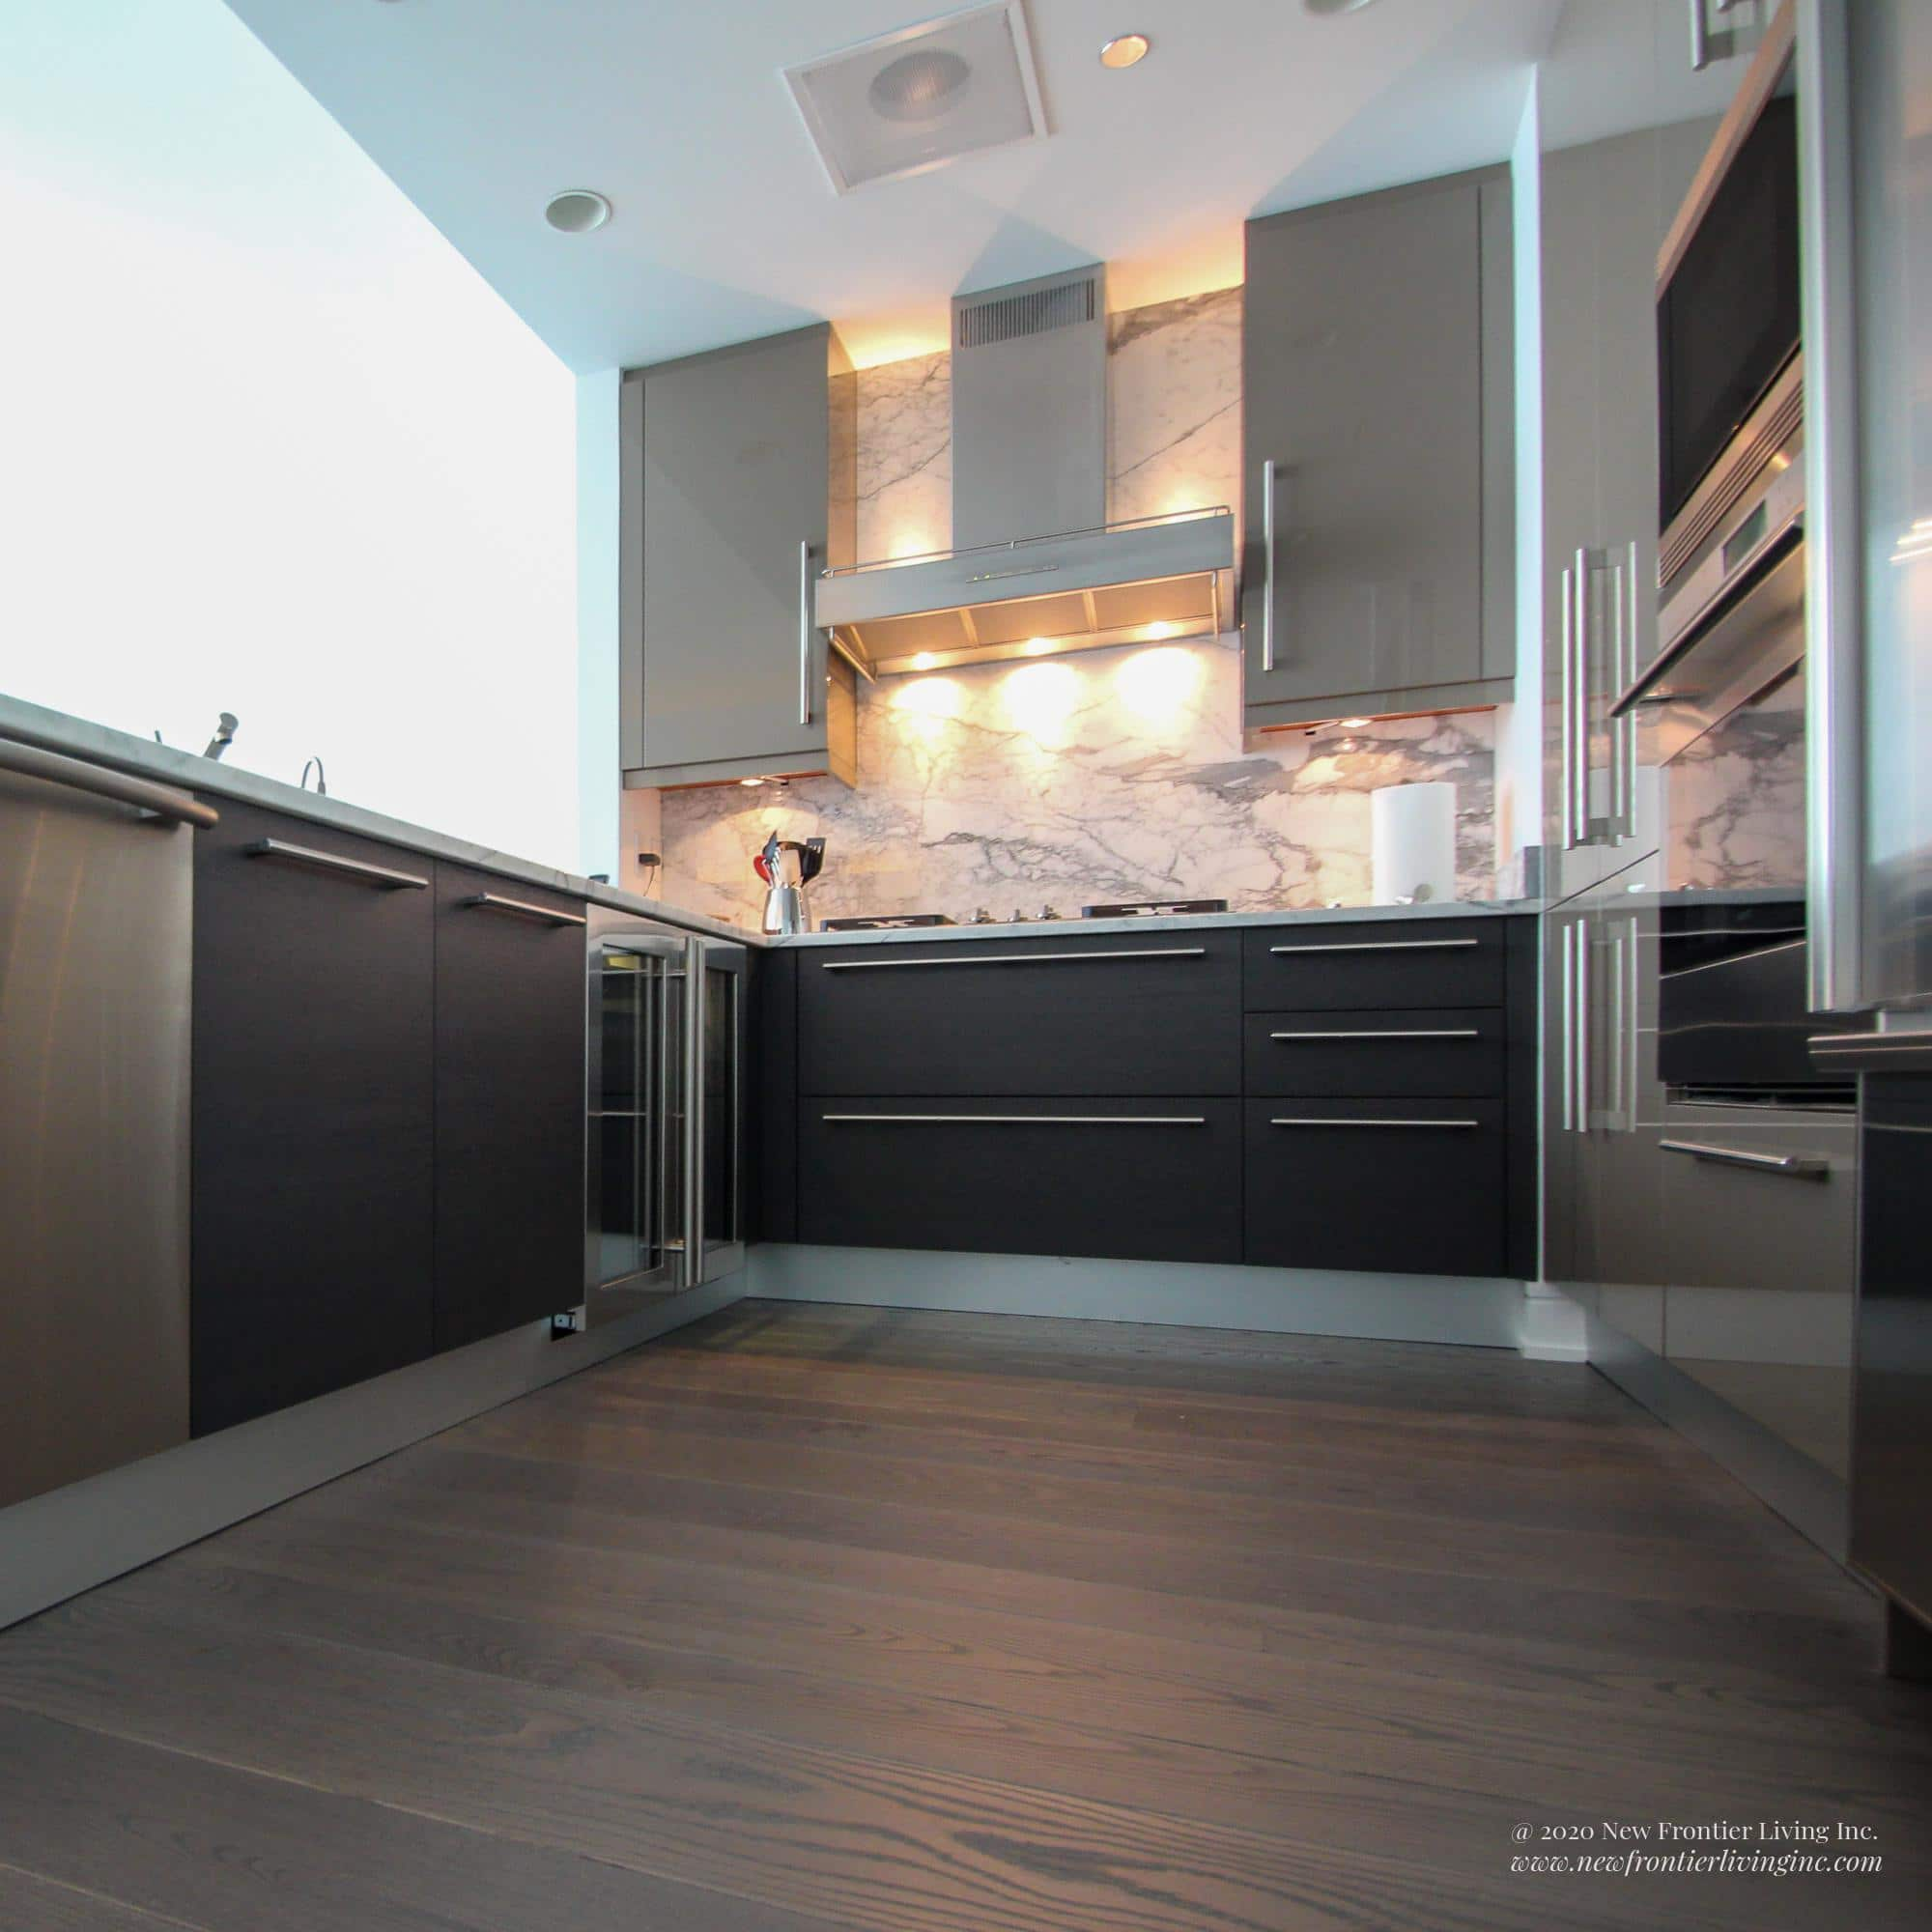 Dark gray kitchen cabinets and dark gray wooden floor, long hood, low angle view